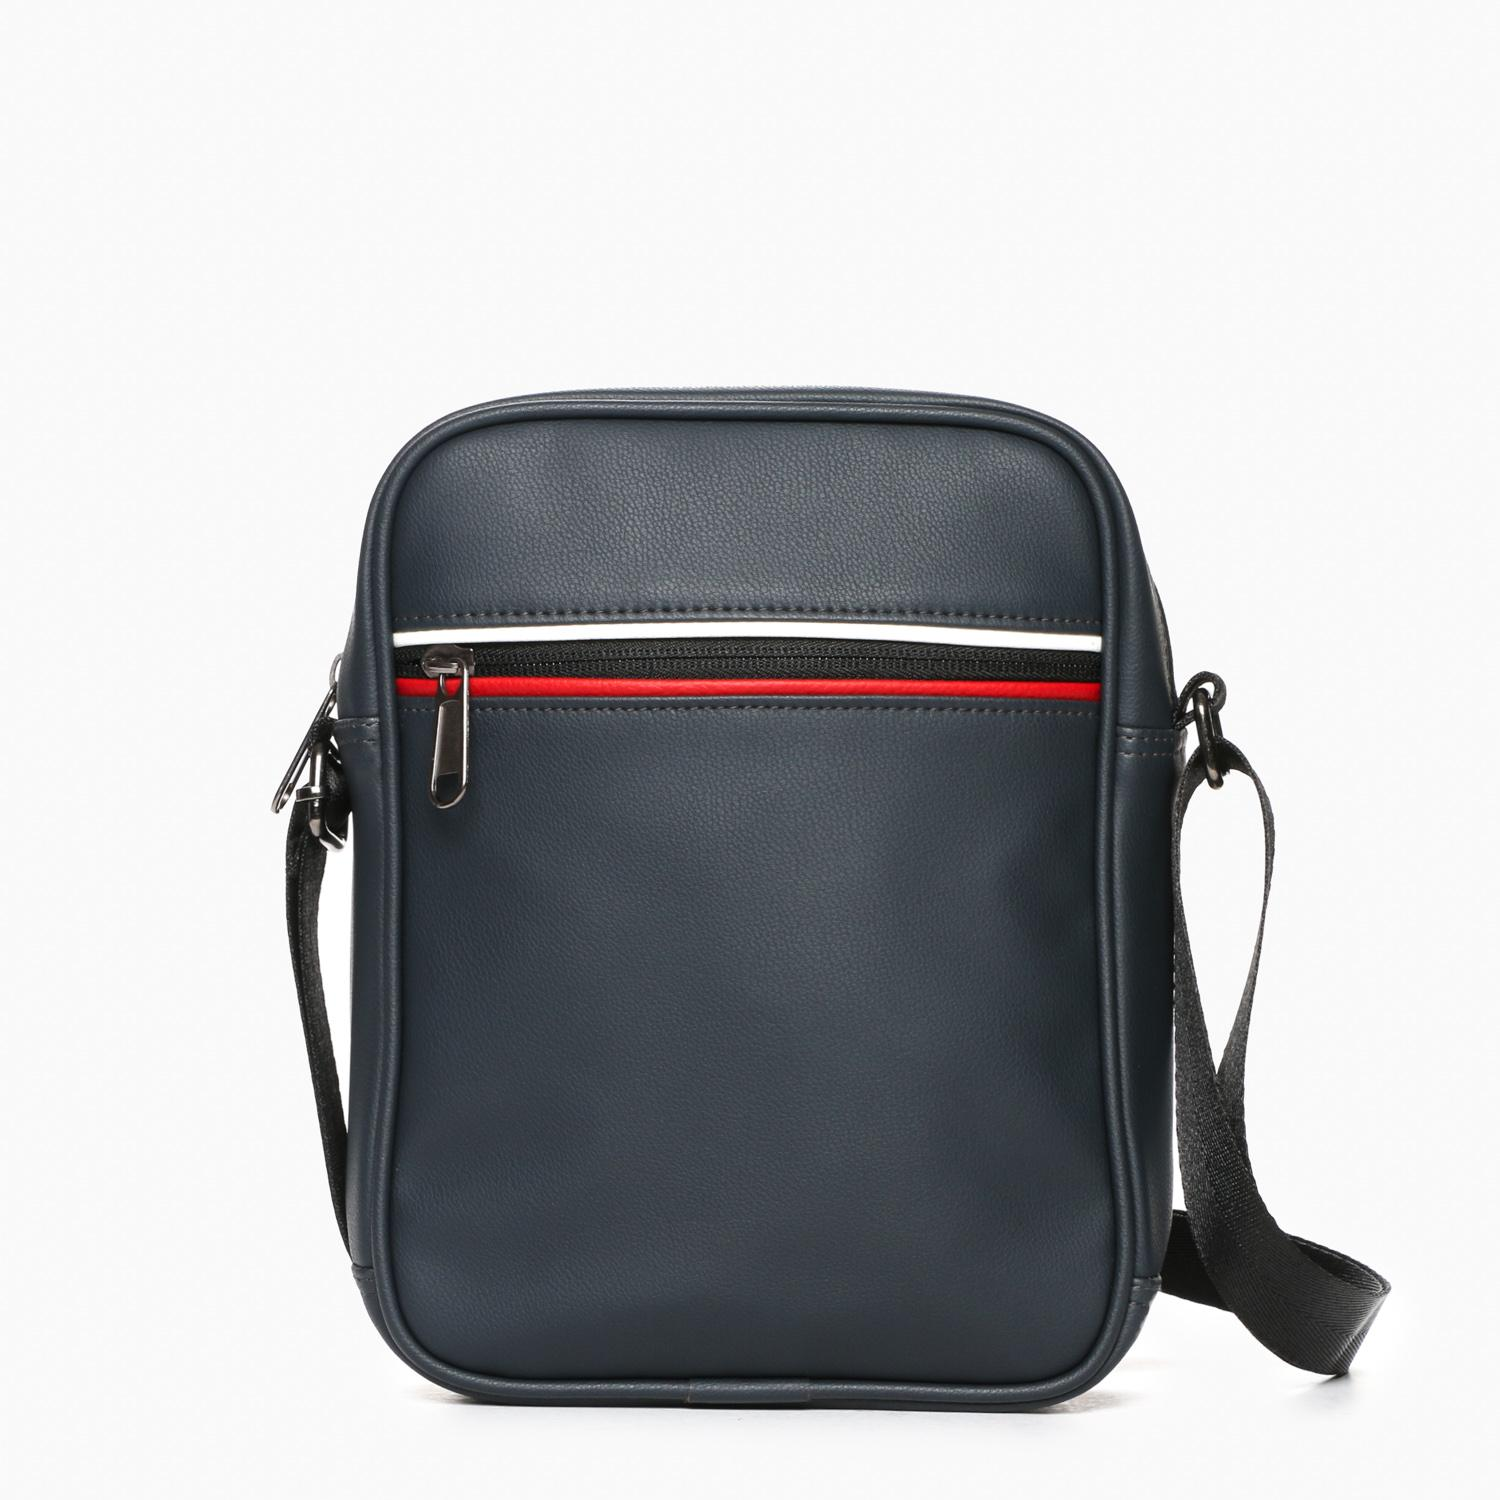 SM Accessories Philippines - SM Accessories Sling Bags for Men for sale -  prices   reviews  ebc761bc95303